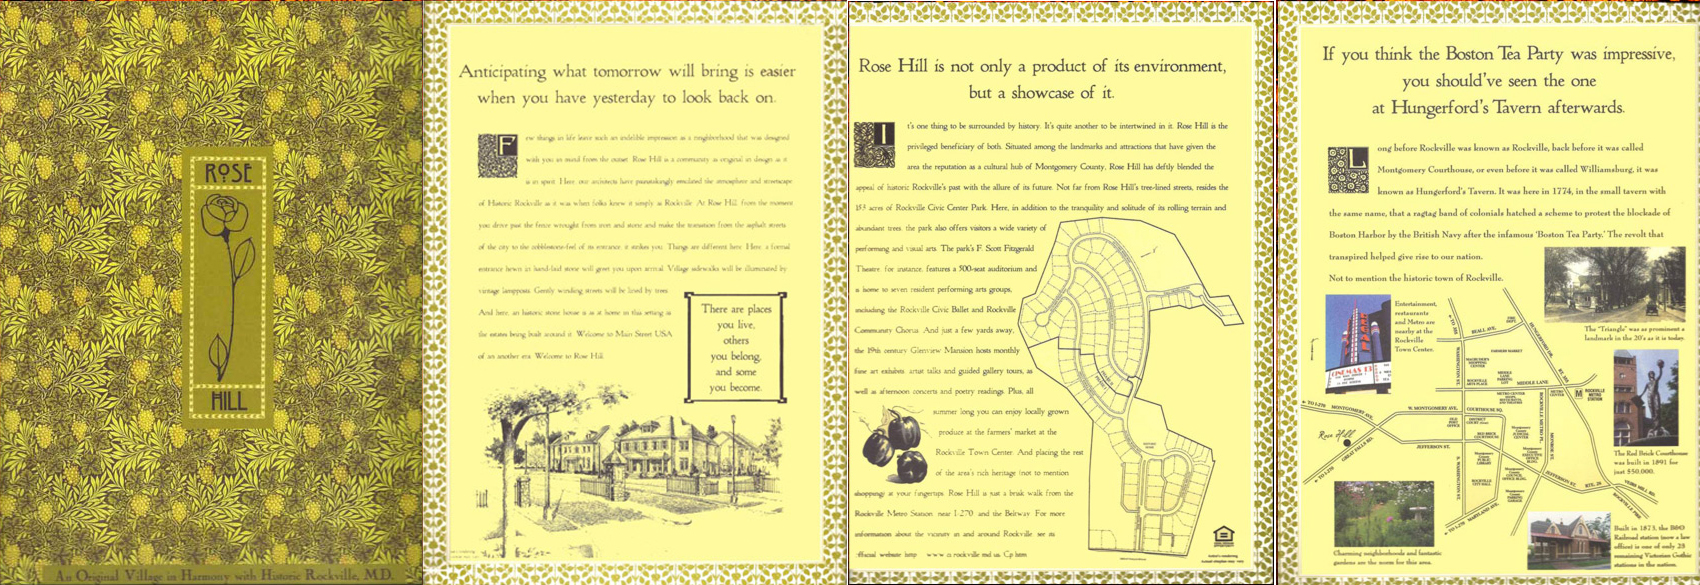 Rose Hill community brochure.jpg